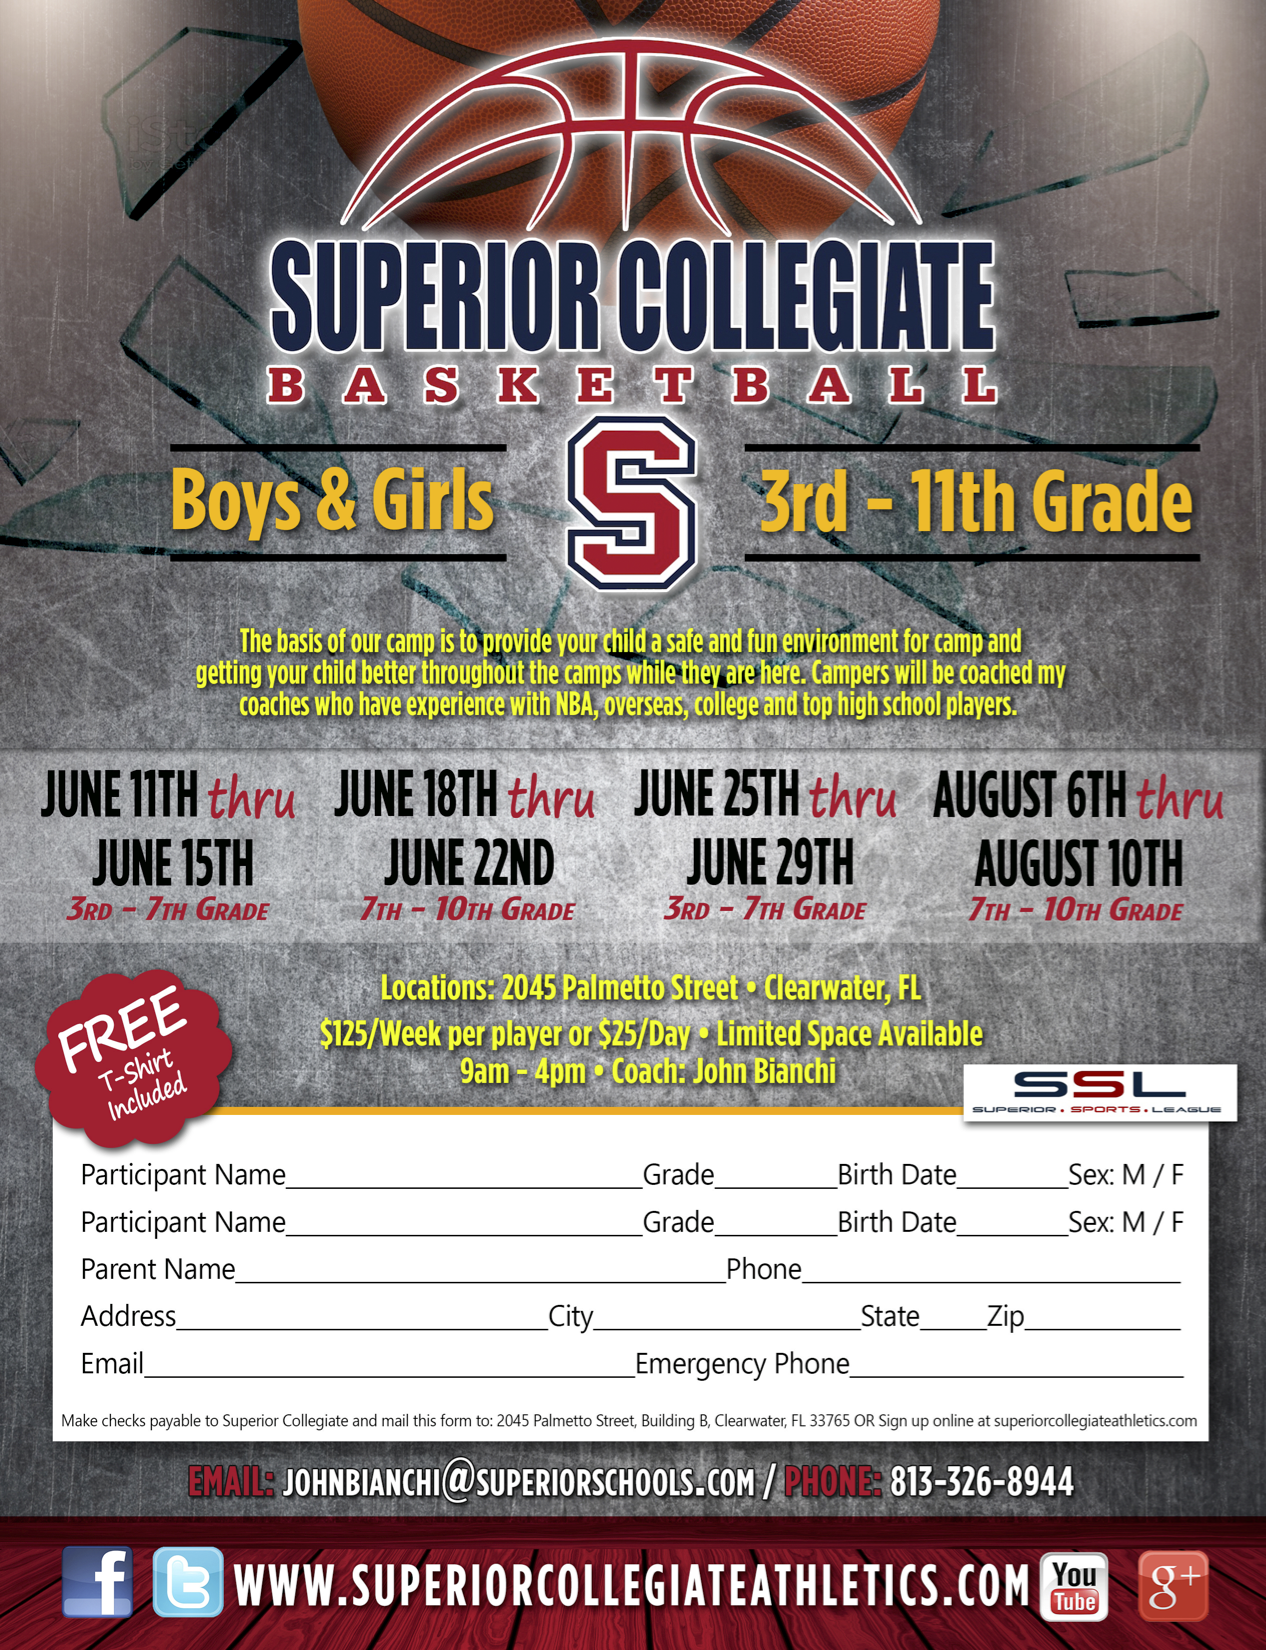 Superior Collegiate Boys & Girls Basketball Camp 3rd-11th Grade